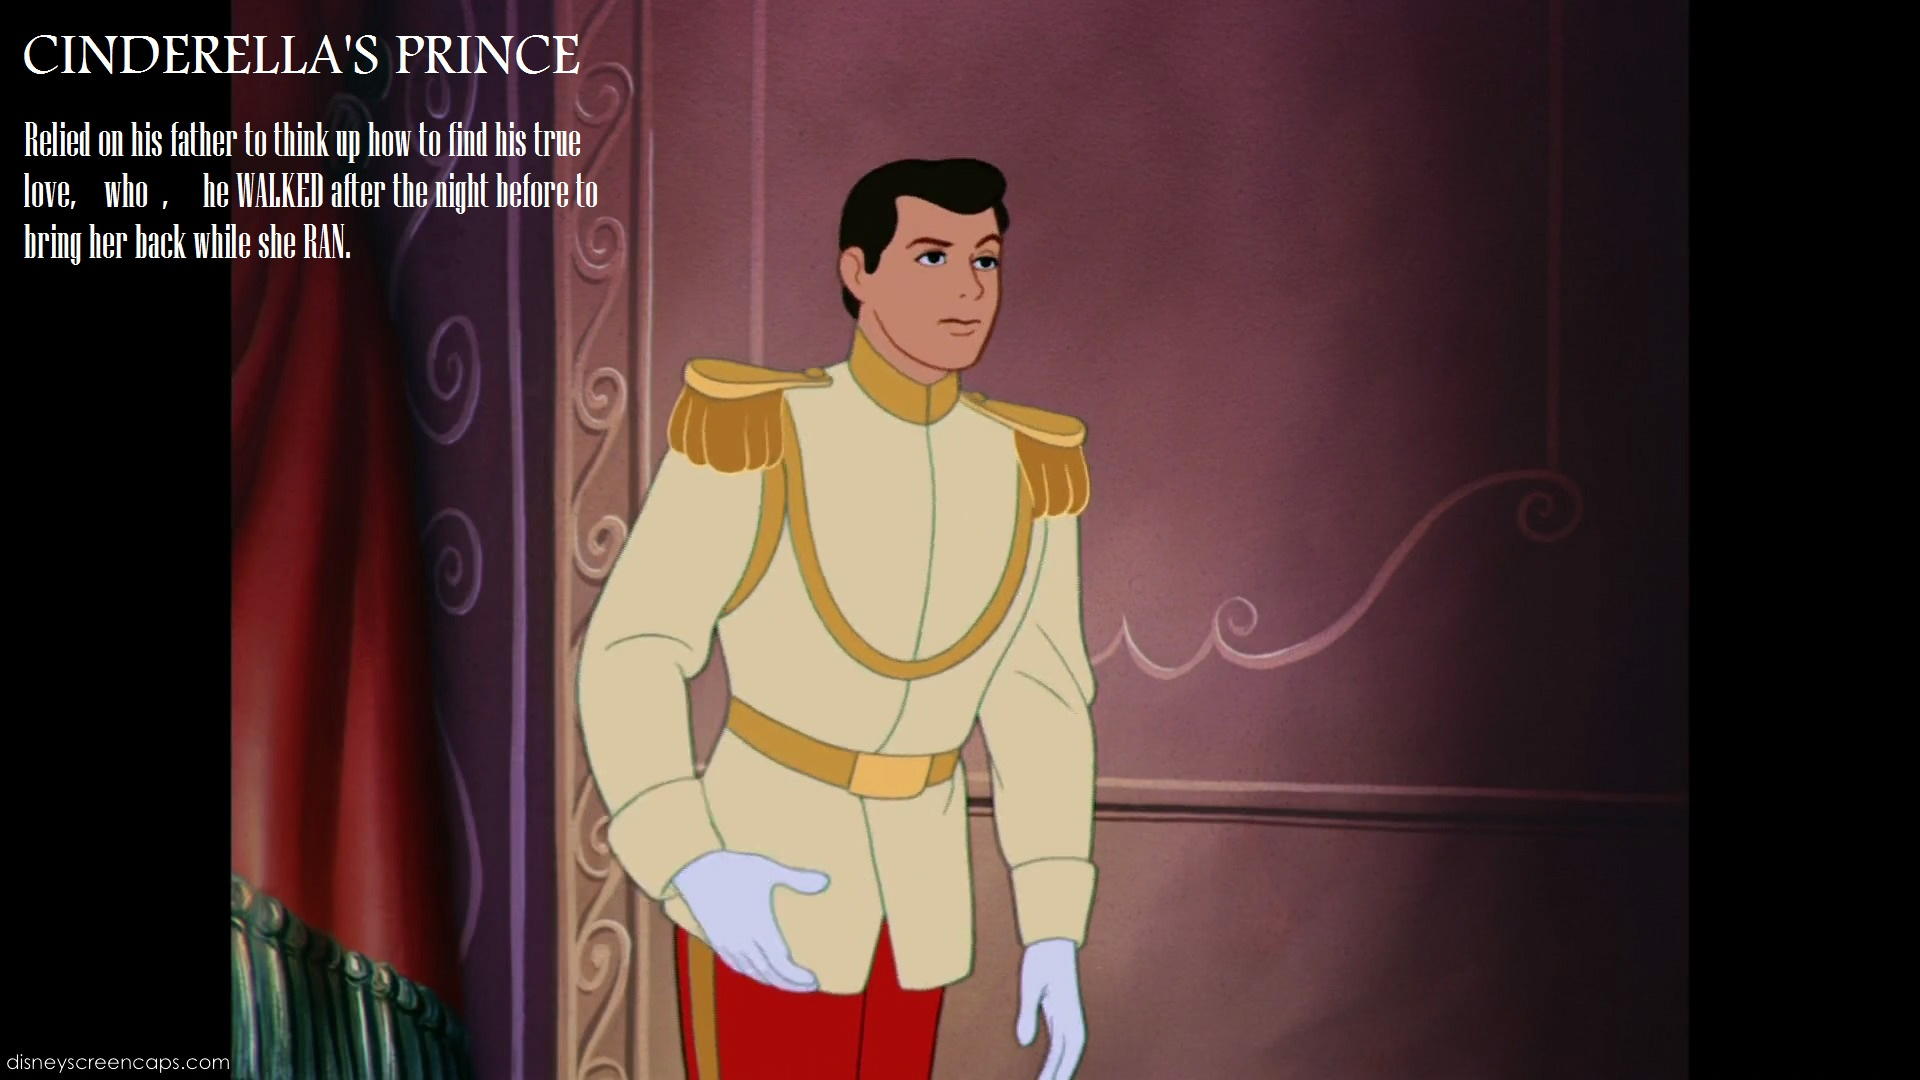 CINDERELLAS PRINCE Relied On His Father To Tlink Up How Find True Love